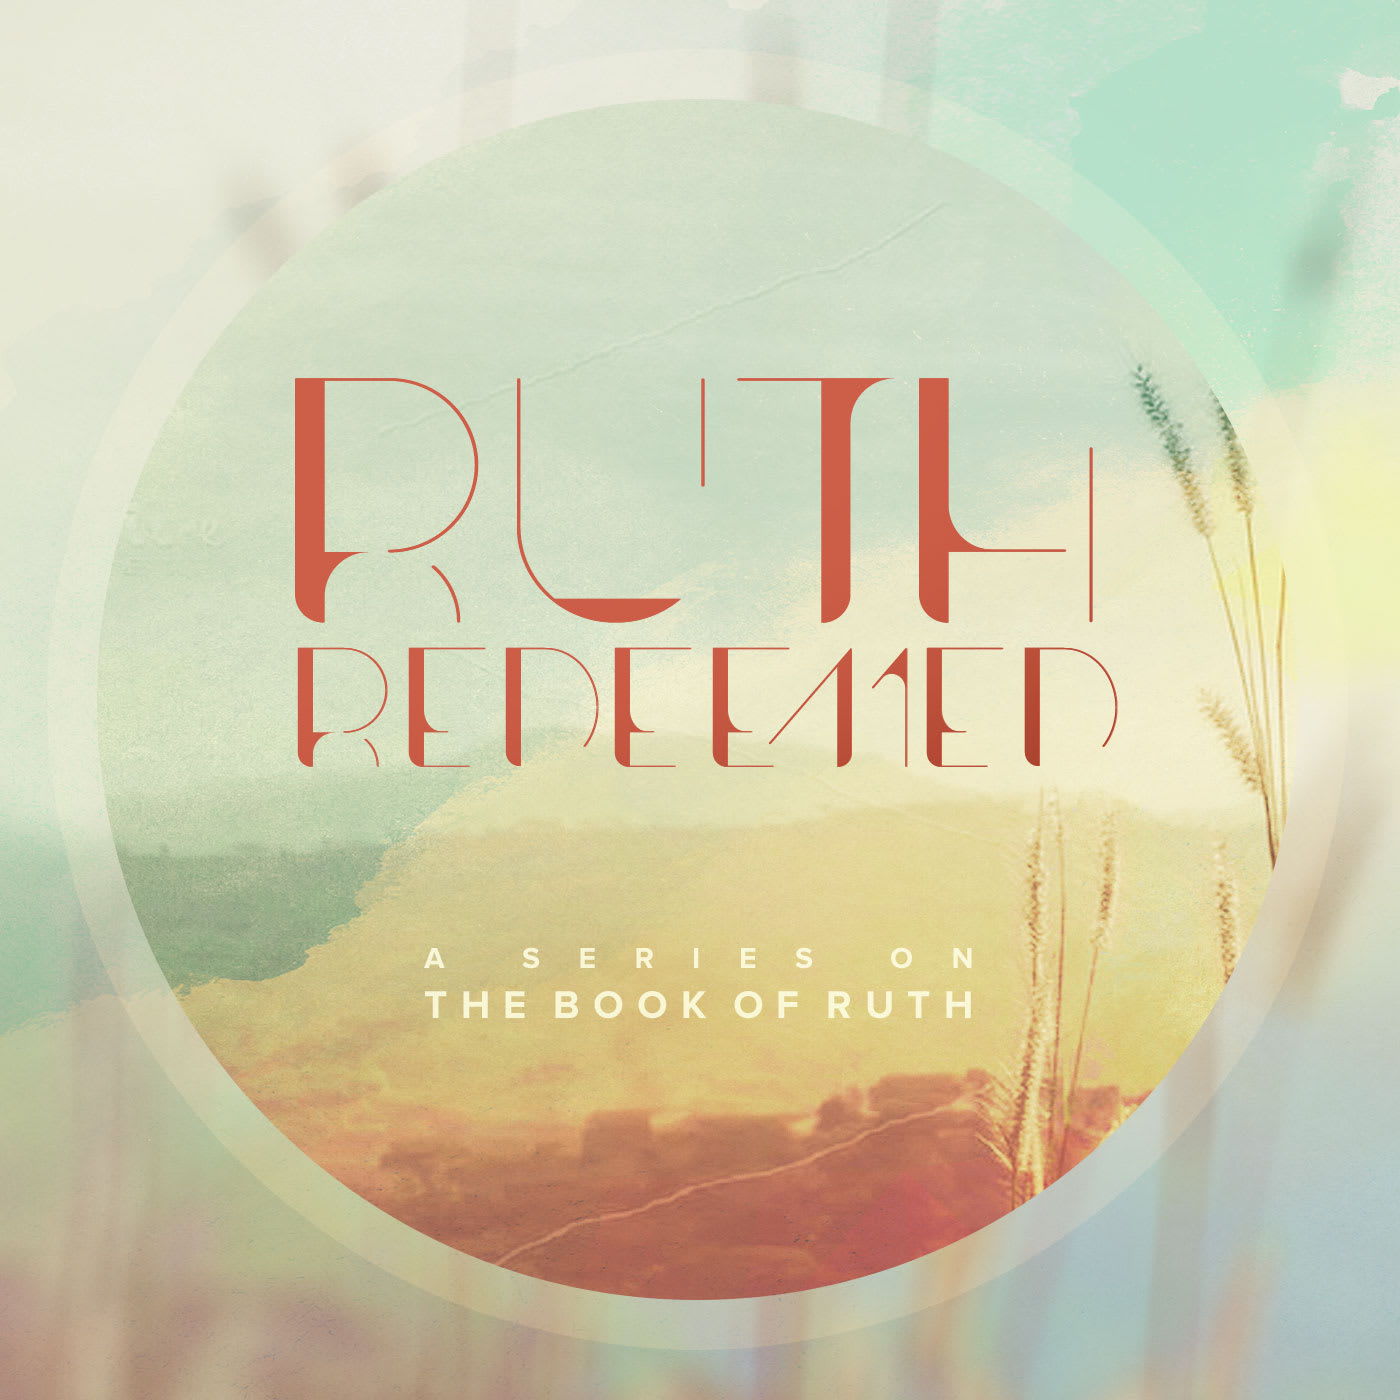 Ruth Redeemed